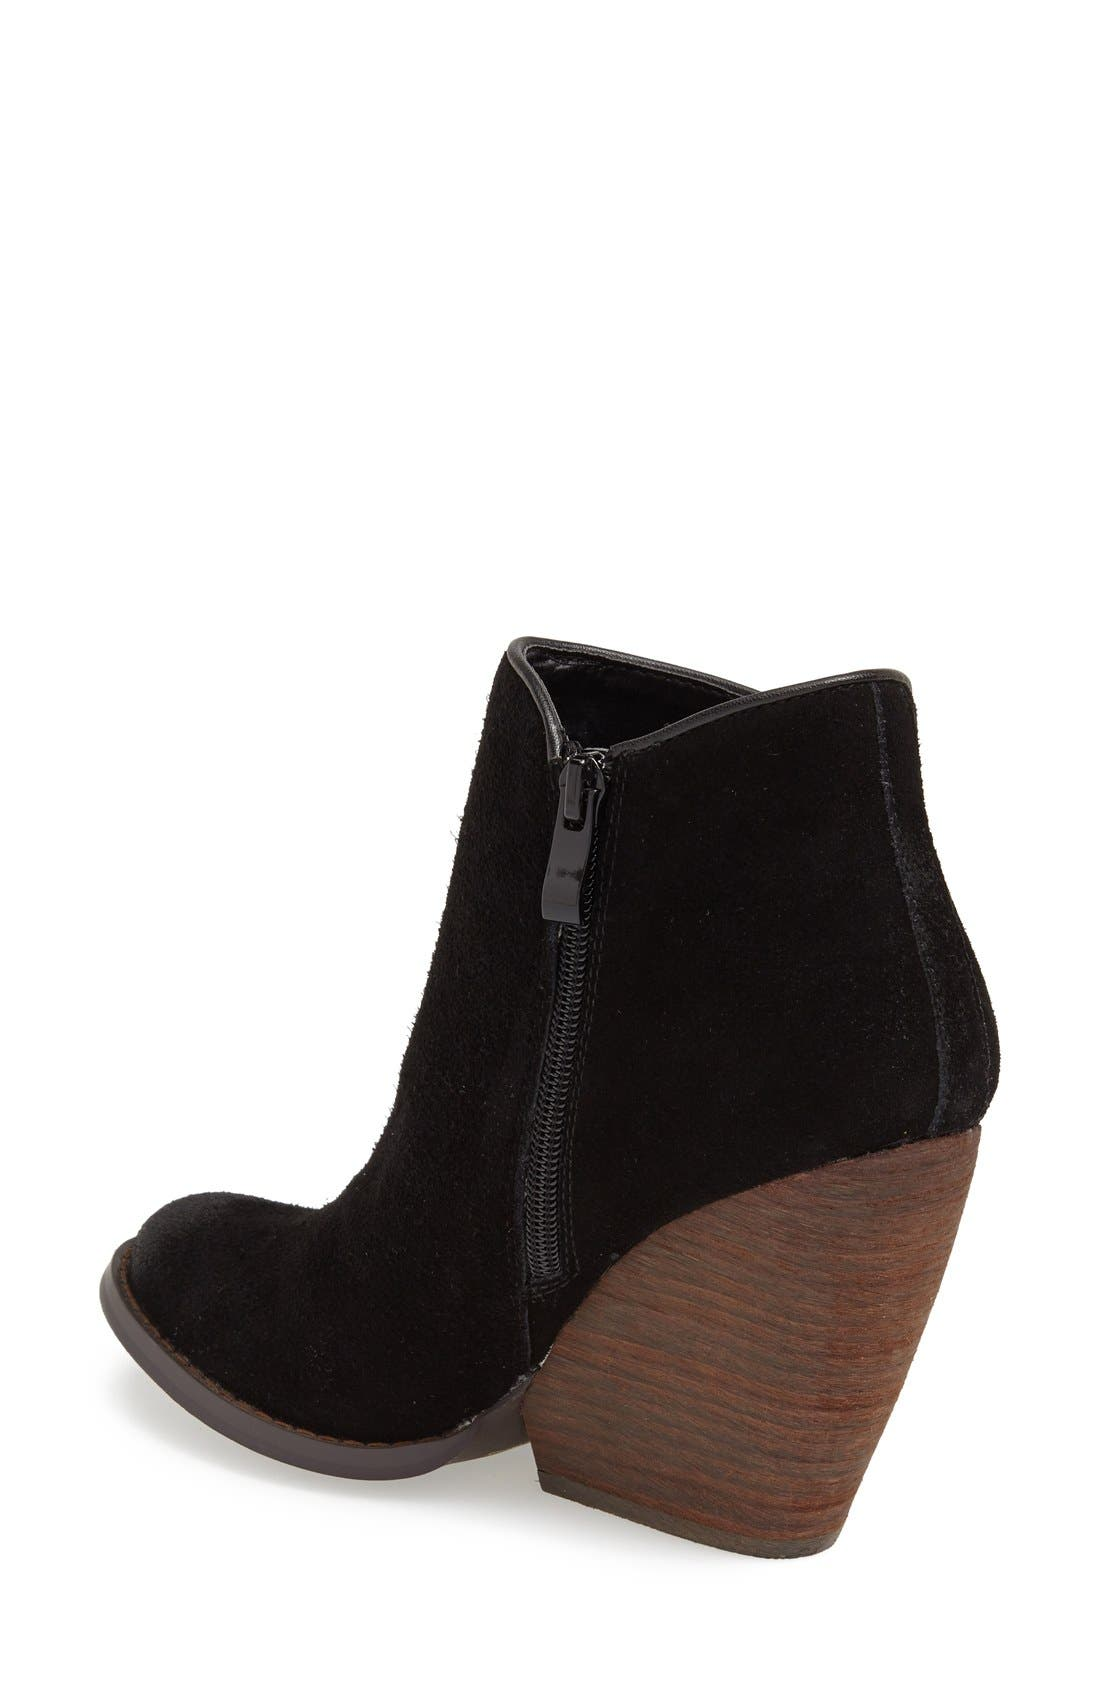 'Whitby' Demi Wedge Bootie,                             Alternate thumbnail 4, color,                             001